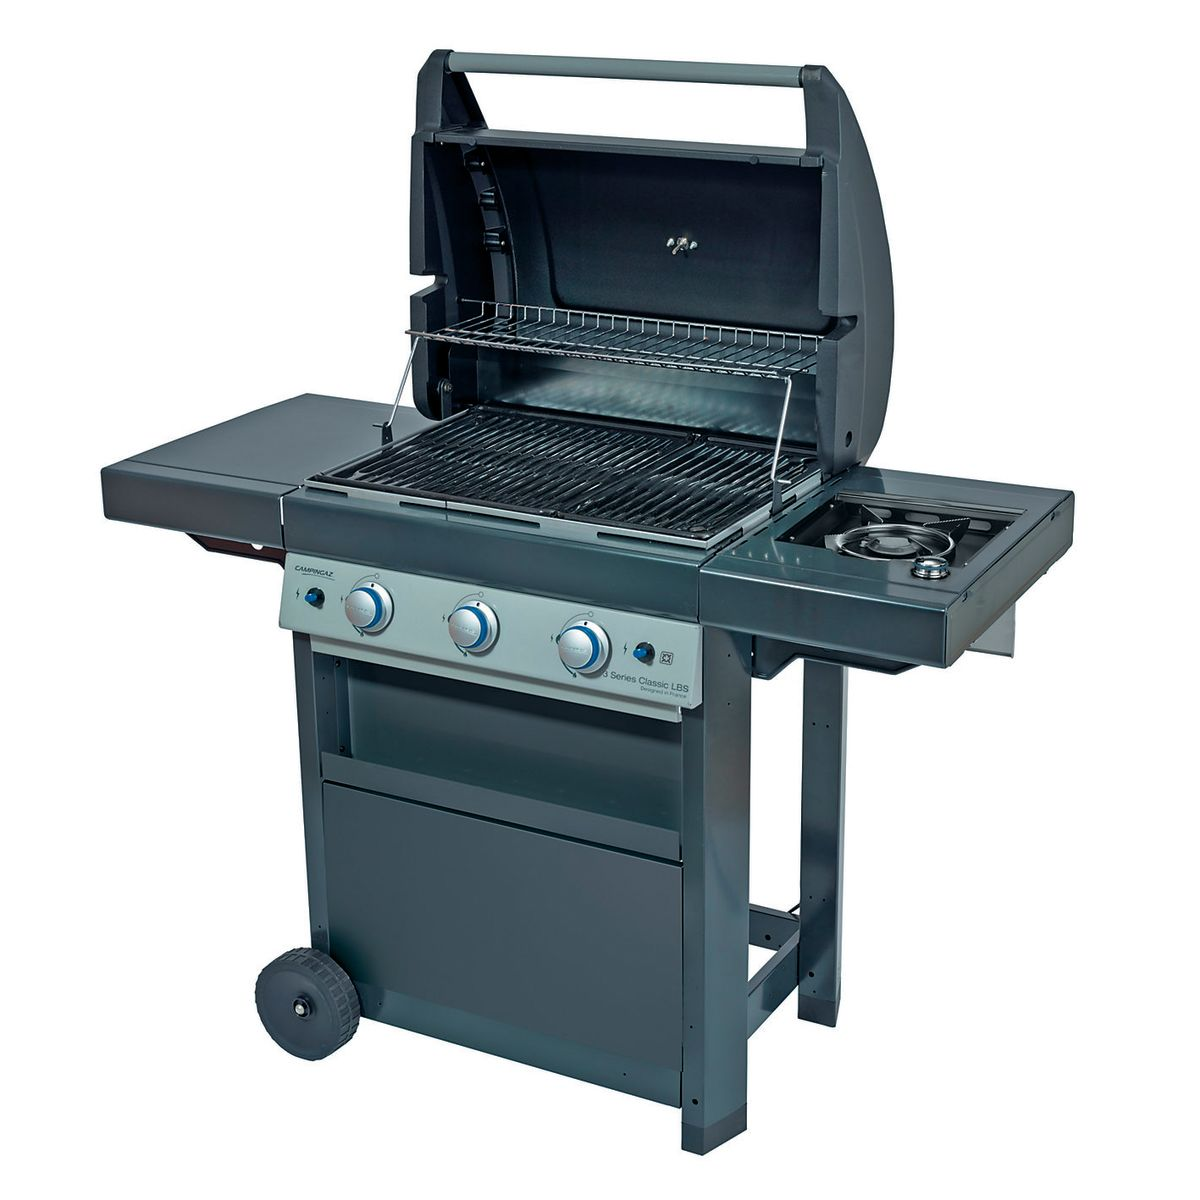 bbq weber leroy merlin free barbecue au gaz cadac urban noir with bbq weber leroy merlin. Black Bedroom Furniture Sets. Home Design Ideas